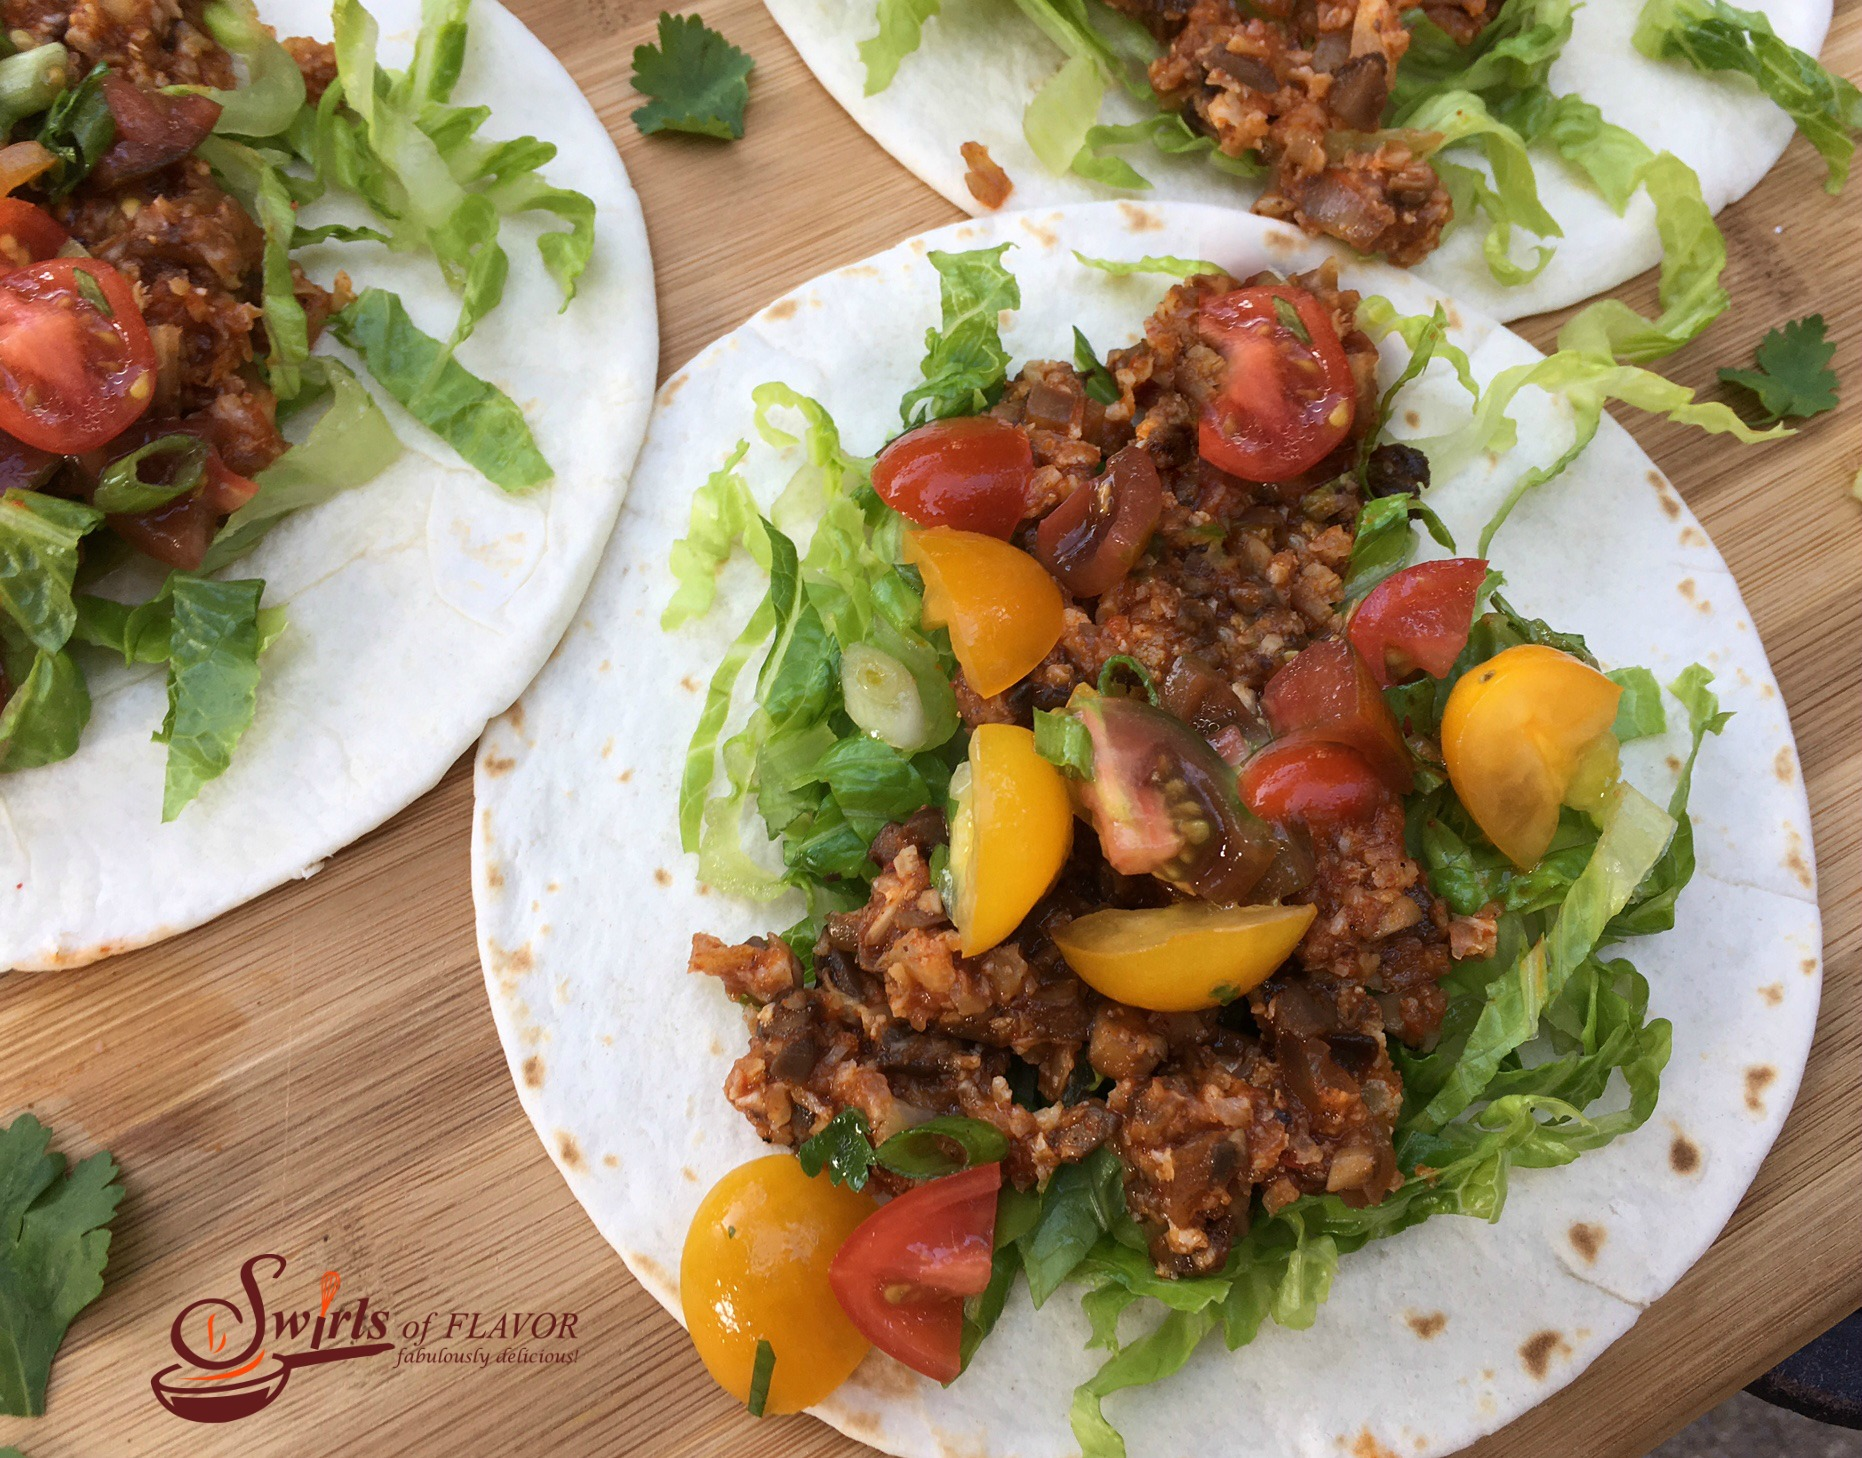 Cauliflower Tacos with shredded lettuce and chopped tomatoes